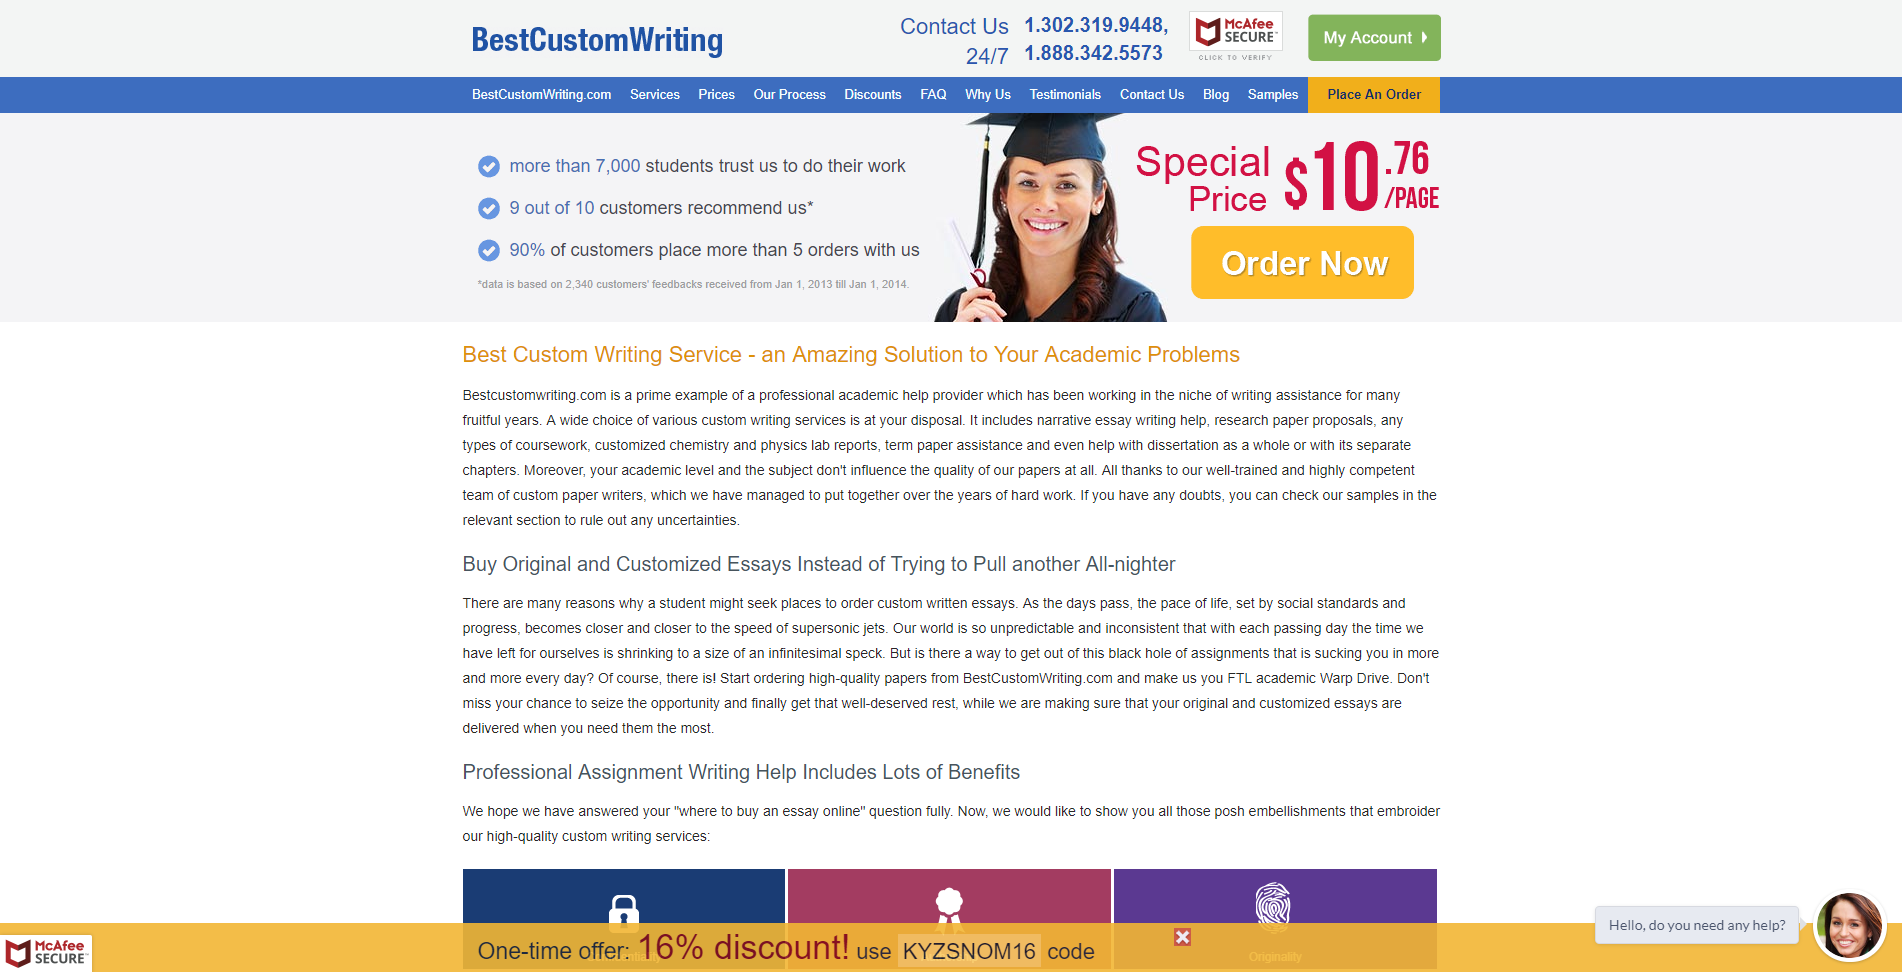 Bestcustomwriting.com - review